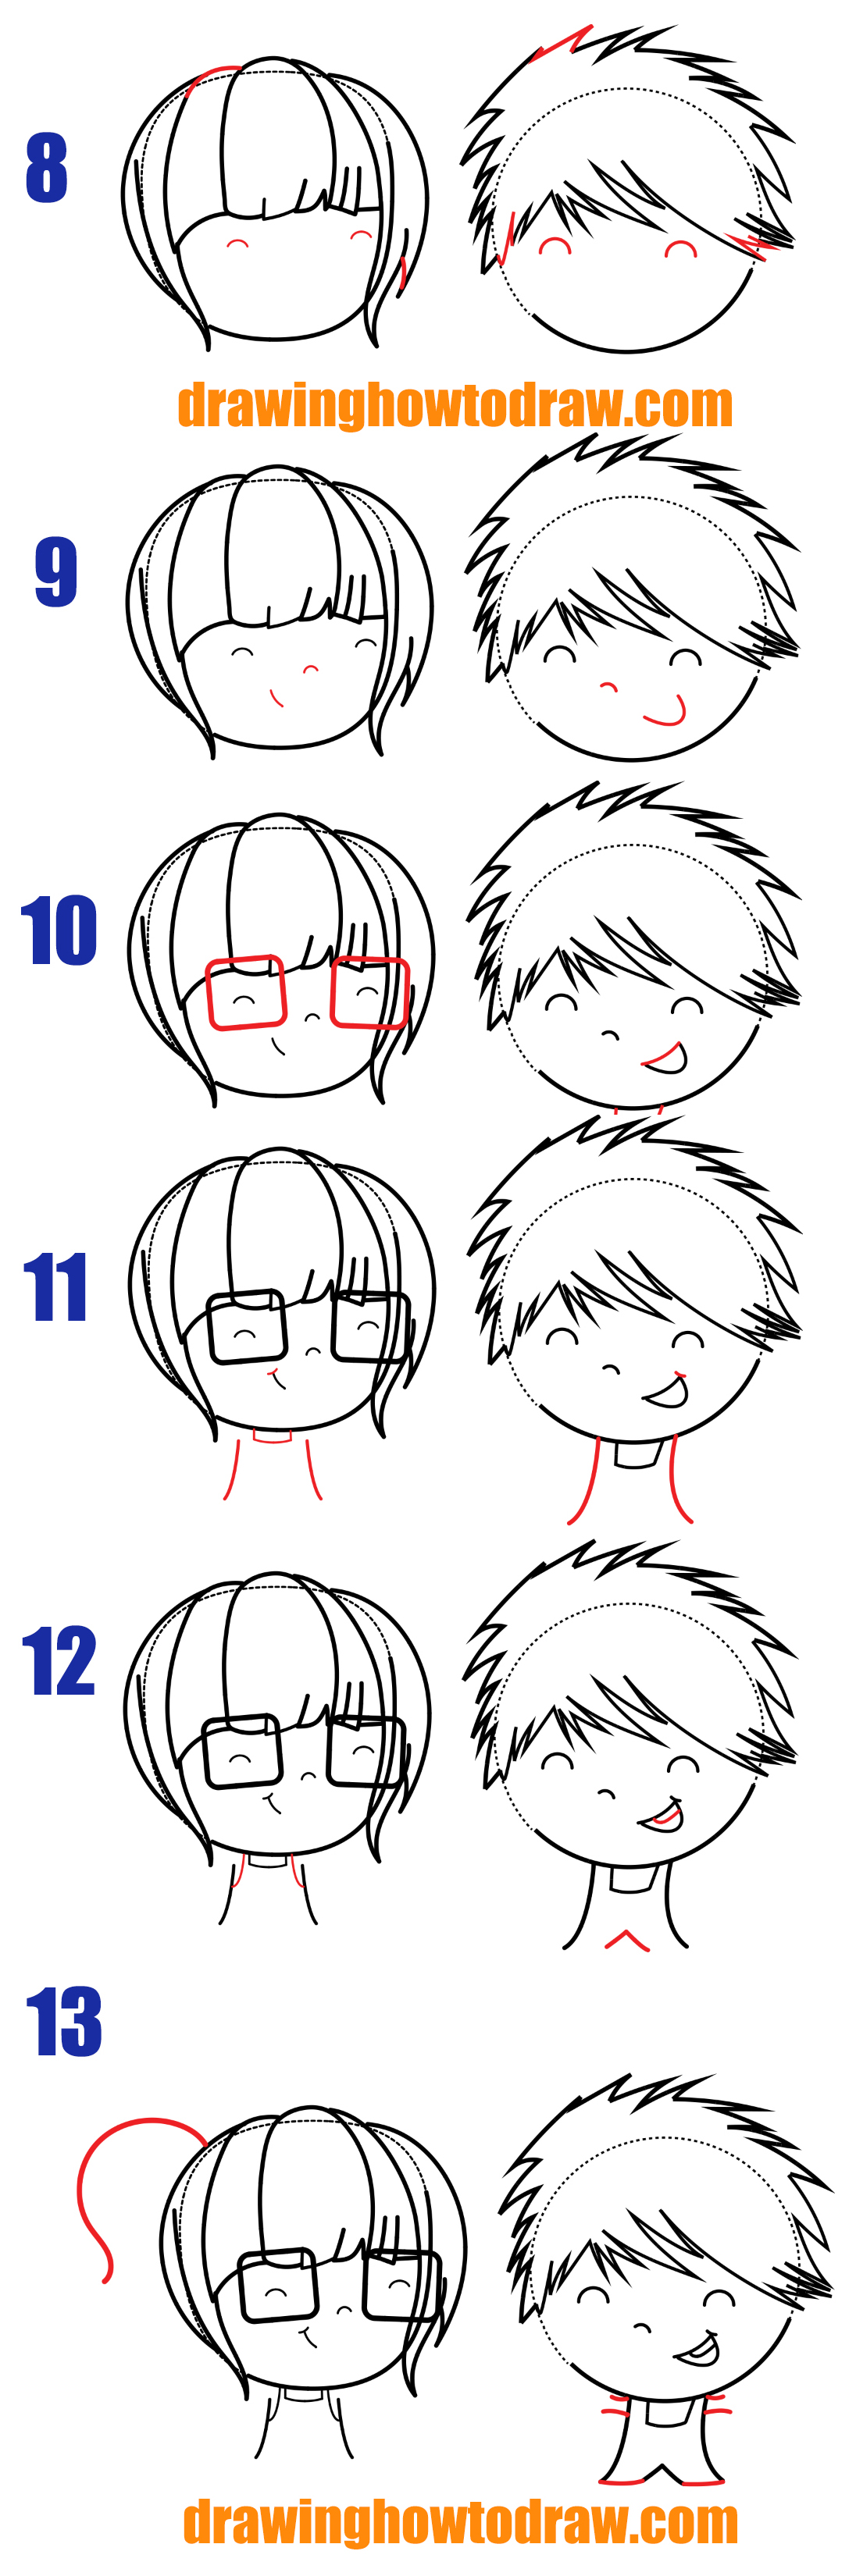 Learn How to Draw a Cute / Kawaii Boy and Girl in Love With Easy Step by Step Drawing Tutorial for Kids and Beginners